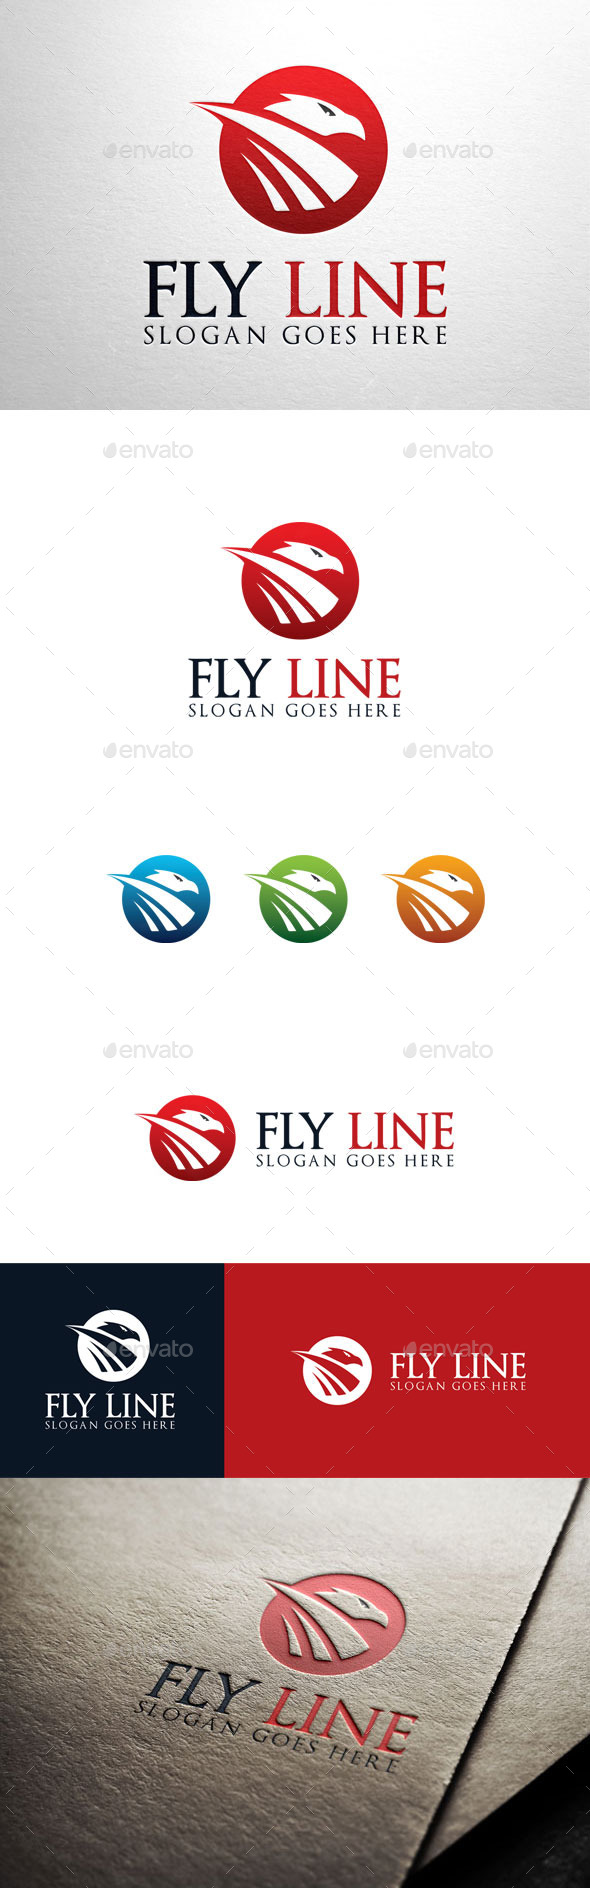 GraphicRiver Fly Line Eagle logo 11063216